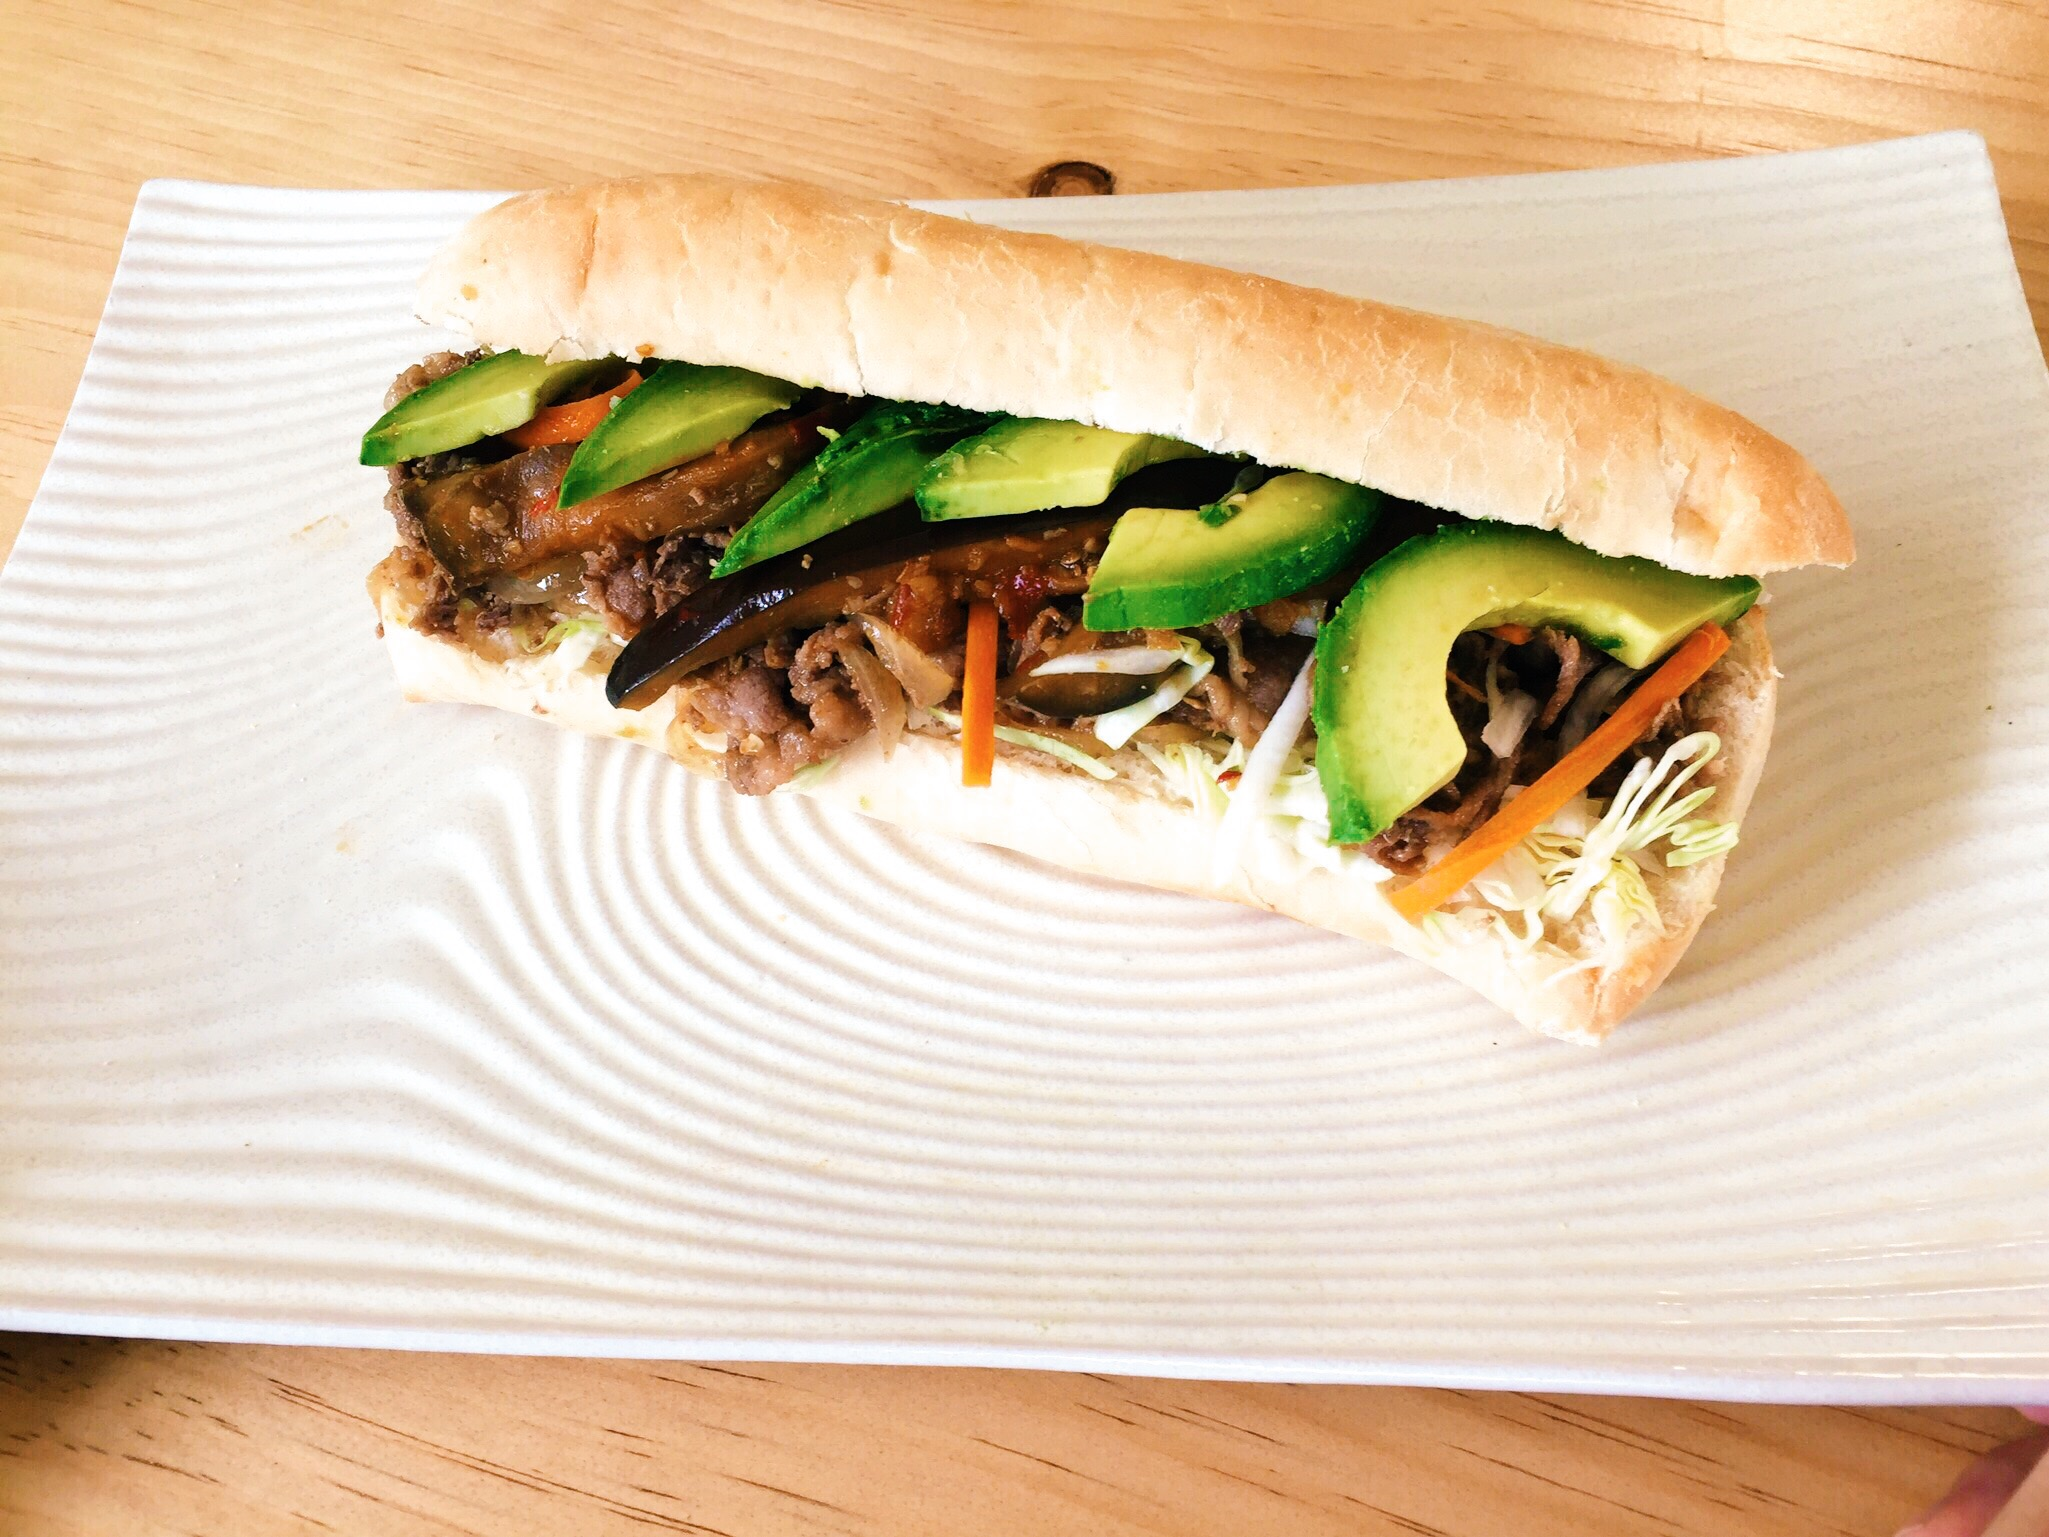 Beef & Avocado Sandwich